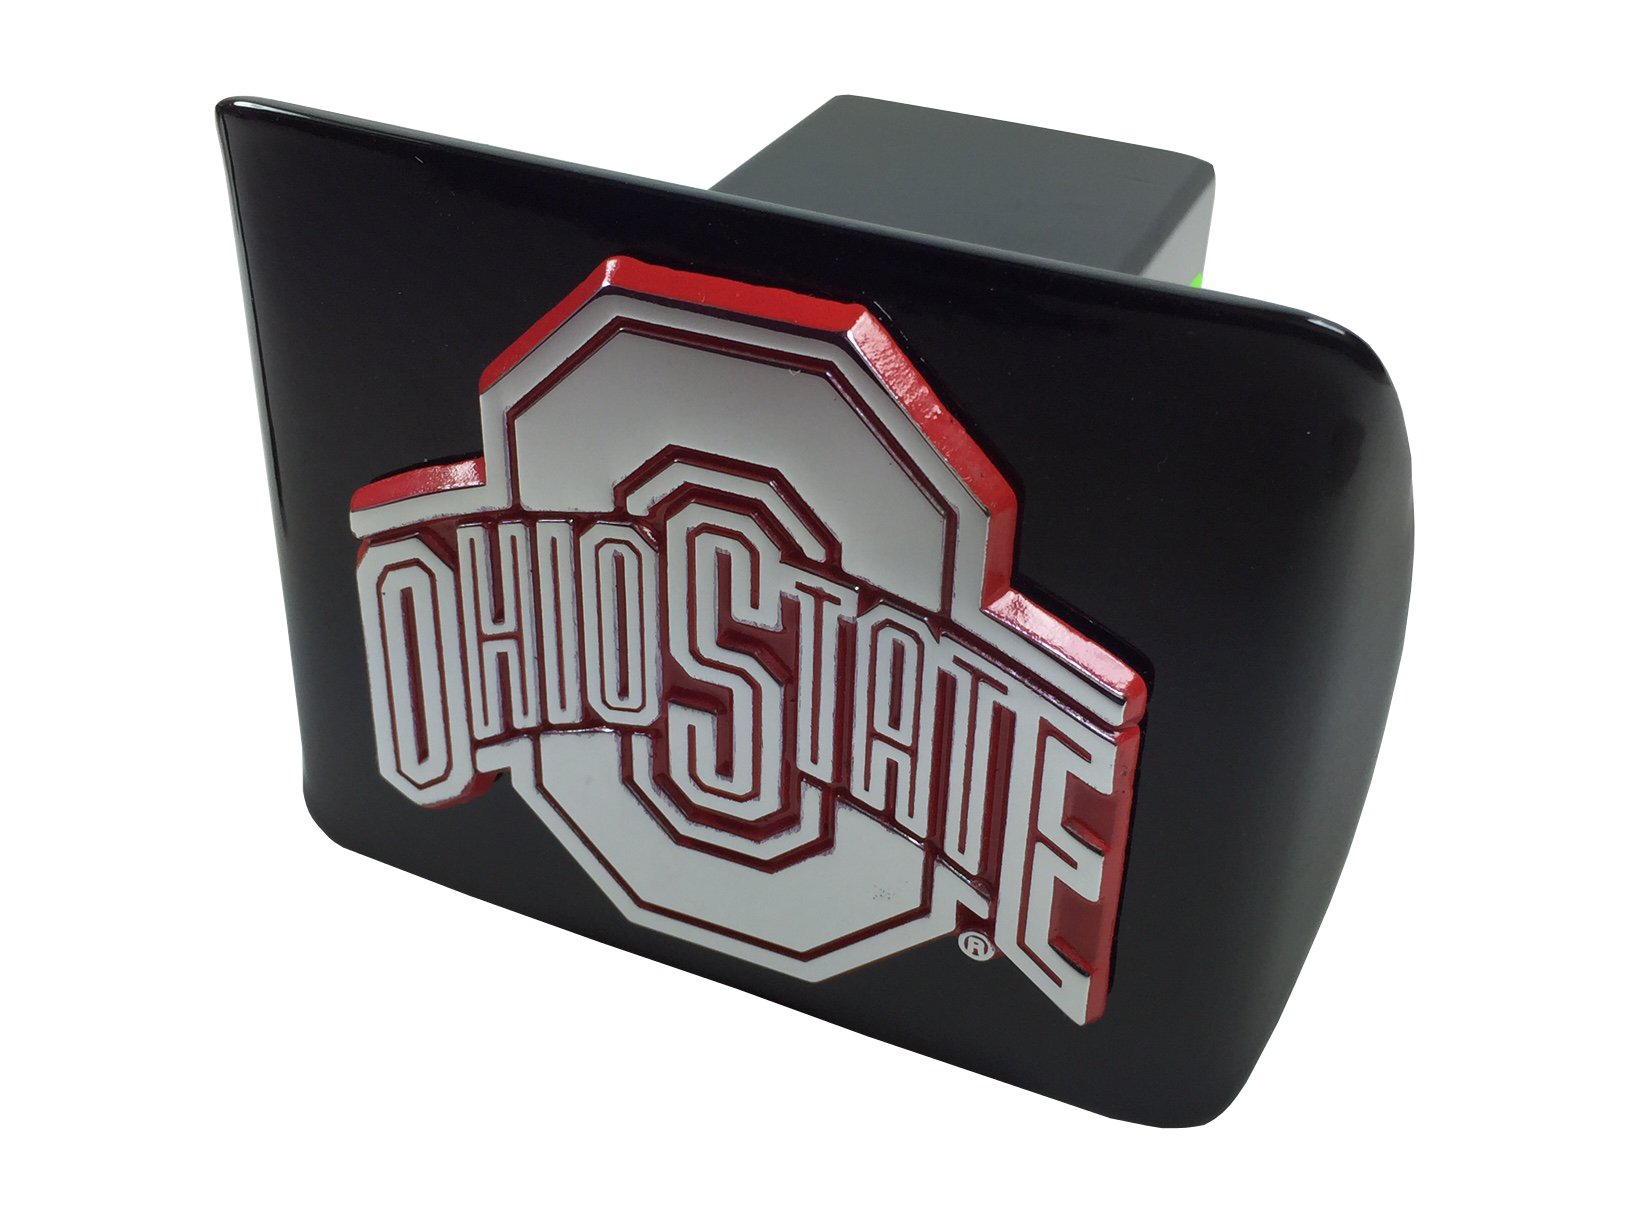 AMG The Ohio State University Metal Emblem (Chrome with red Trim) on Black Metal Hitch Cover by AMG